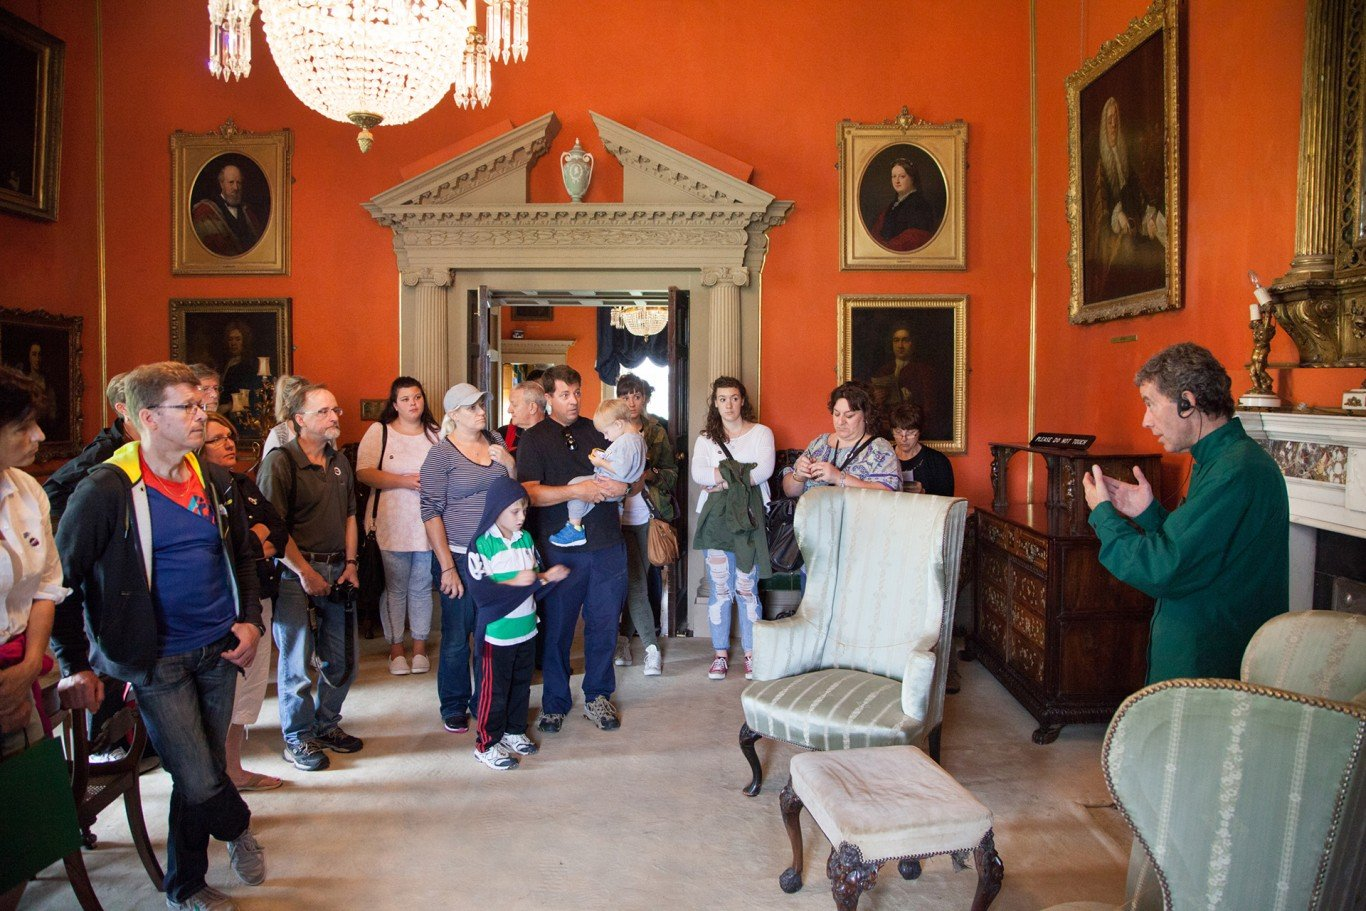 Tour guide talking to a group of visitors in a historic room in malahide castle